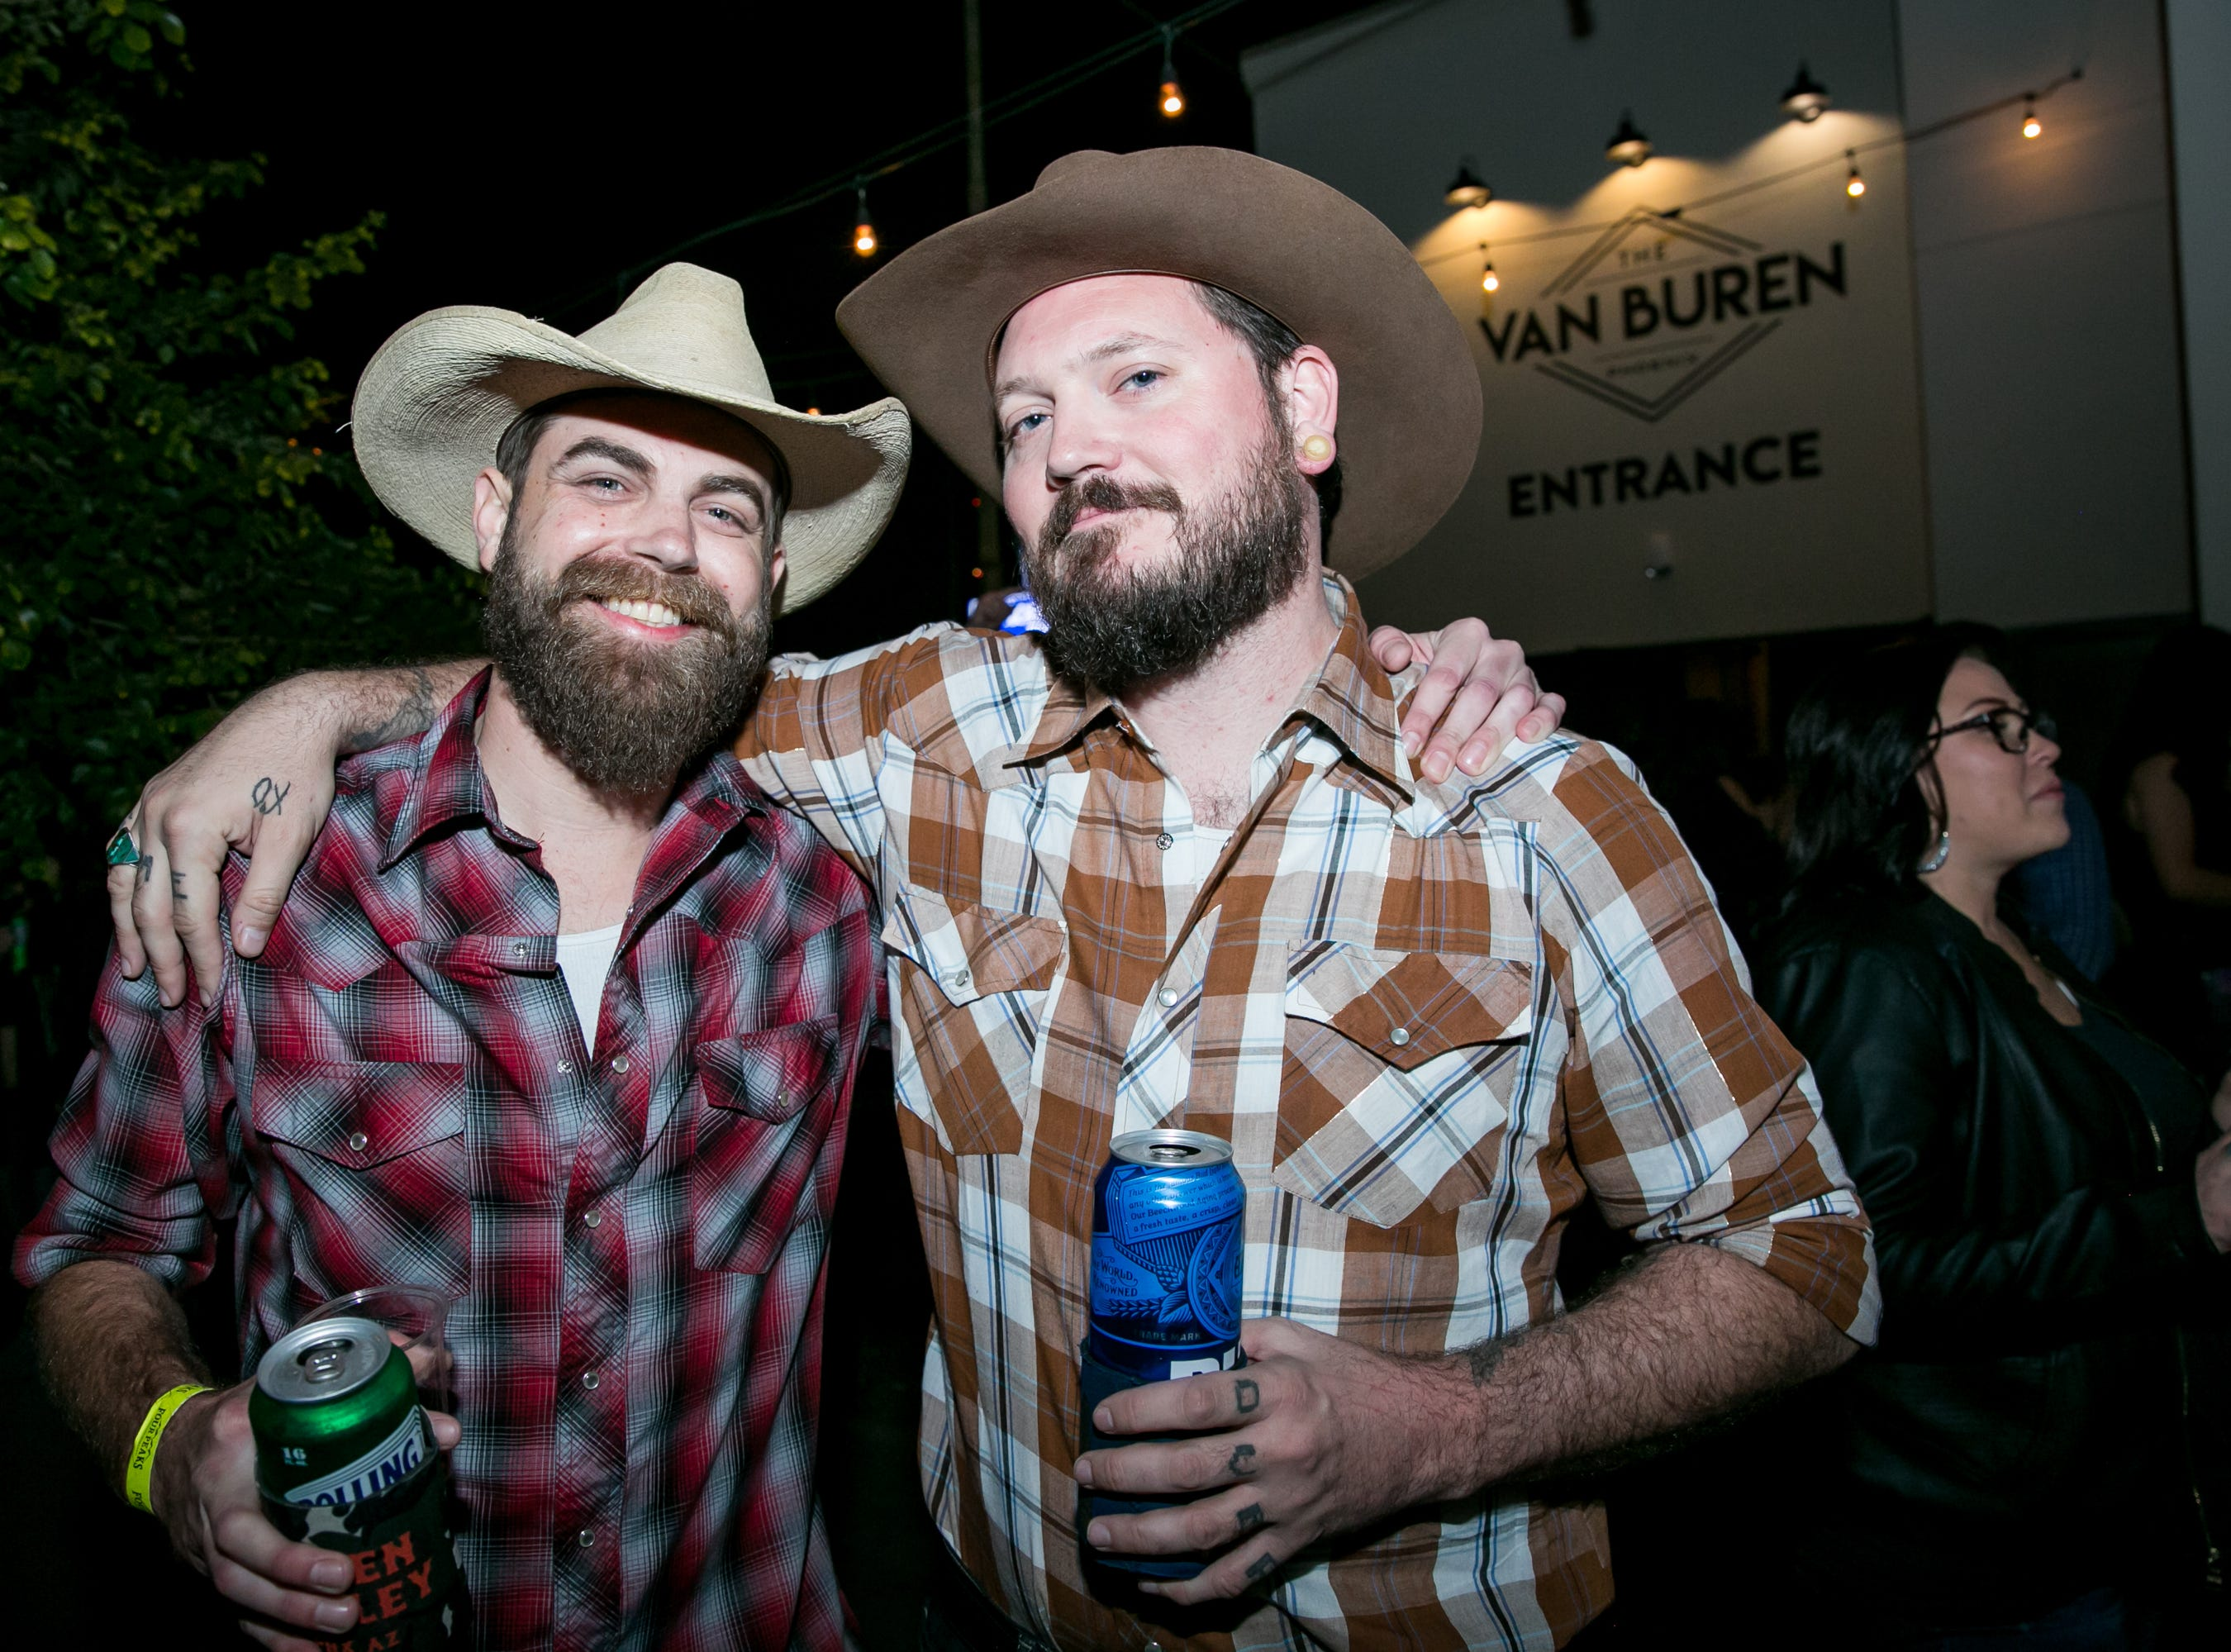 These fellas had too much fun during the KMLE Country 90's Throwback at The Van Buren on Friday, Jan. 11, 2019.